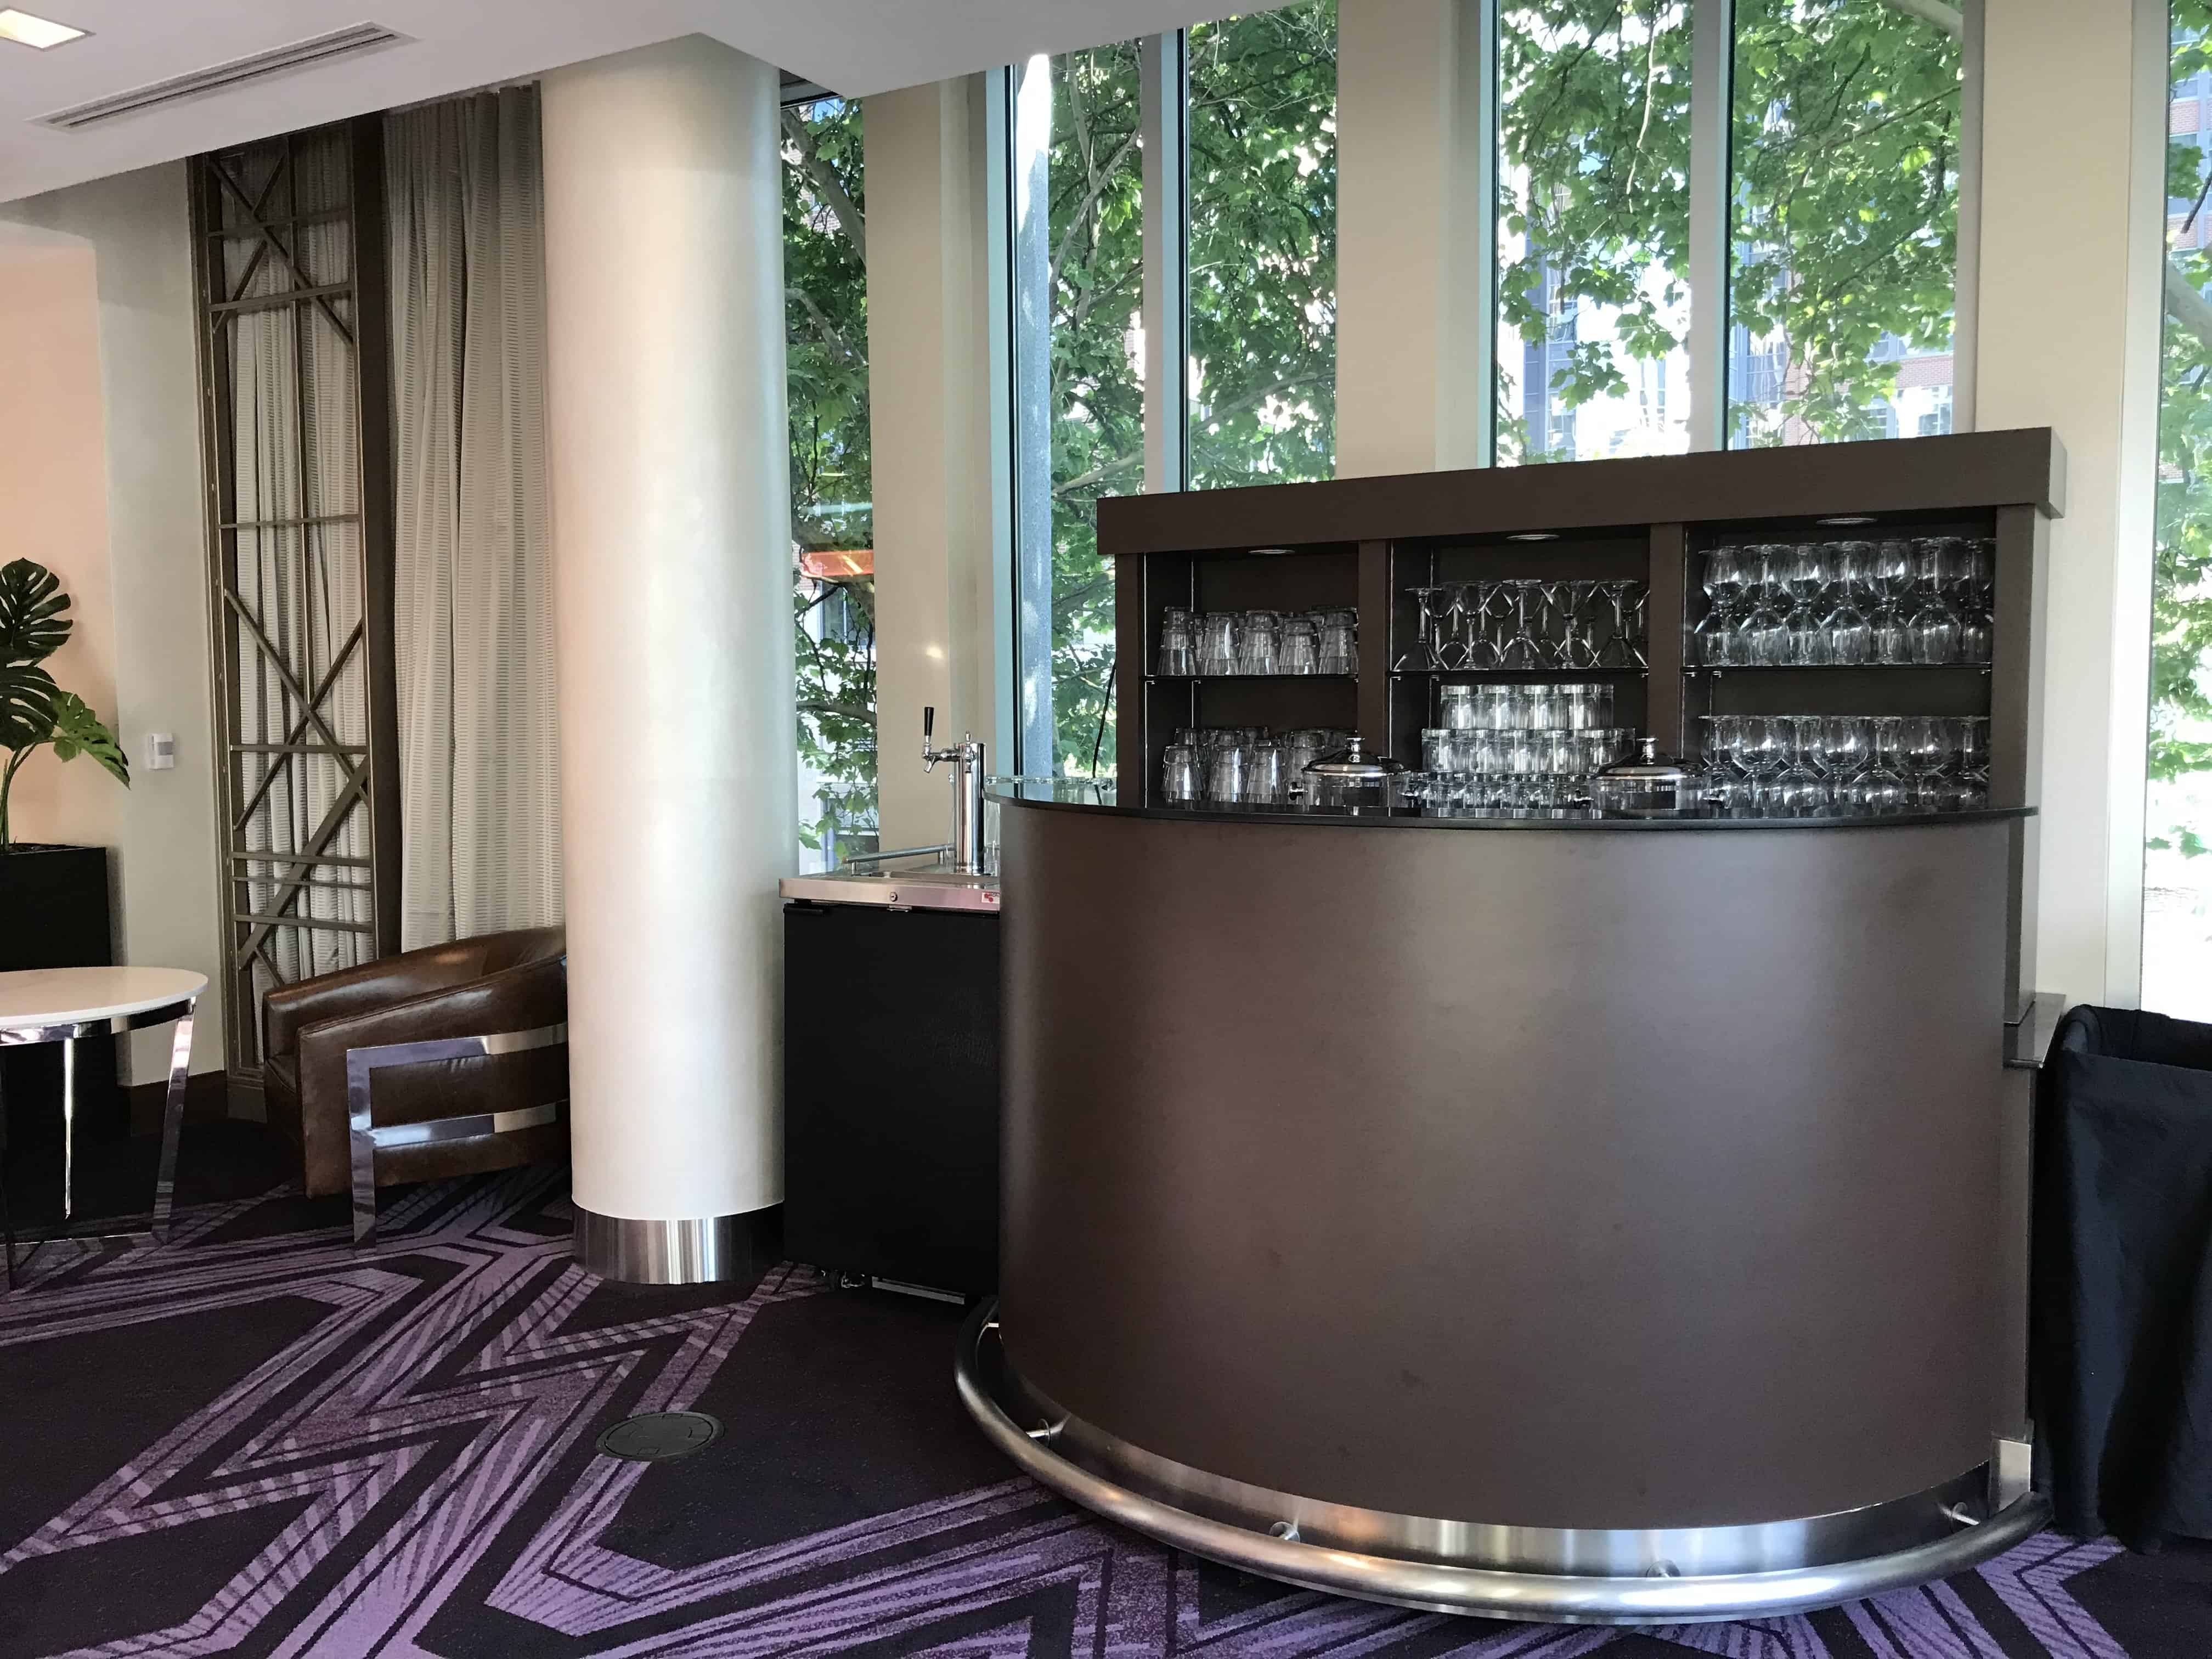 Upstairs Reception Service Area